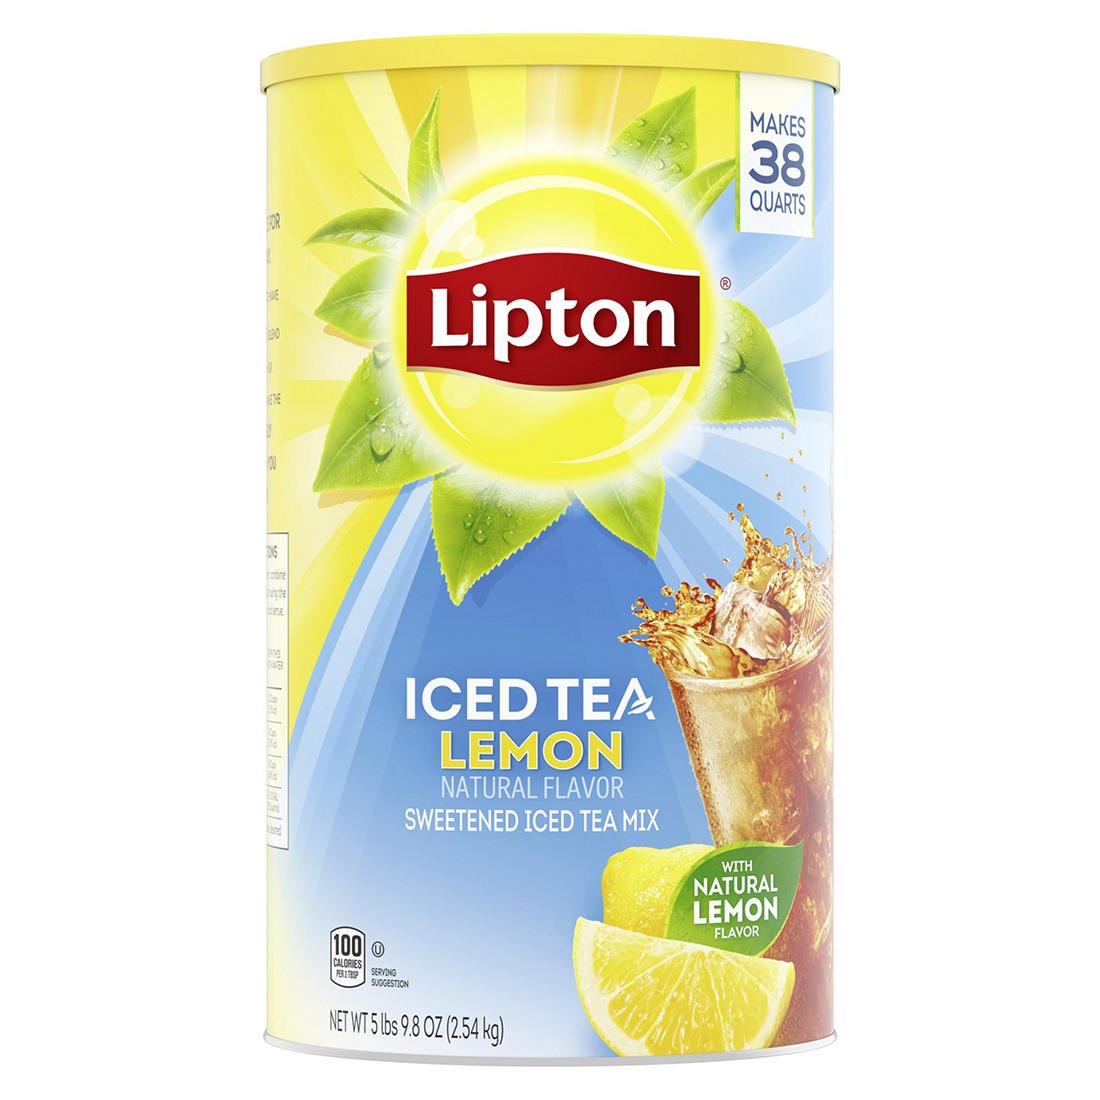 Lipton Lemon Iced Tea Mix 38 Qt Bjs Wholesale Club